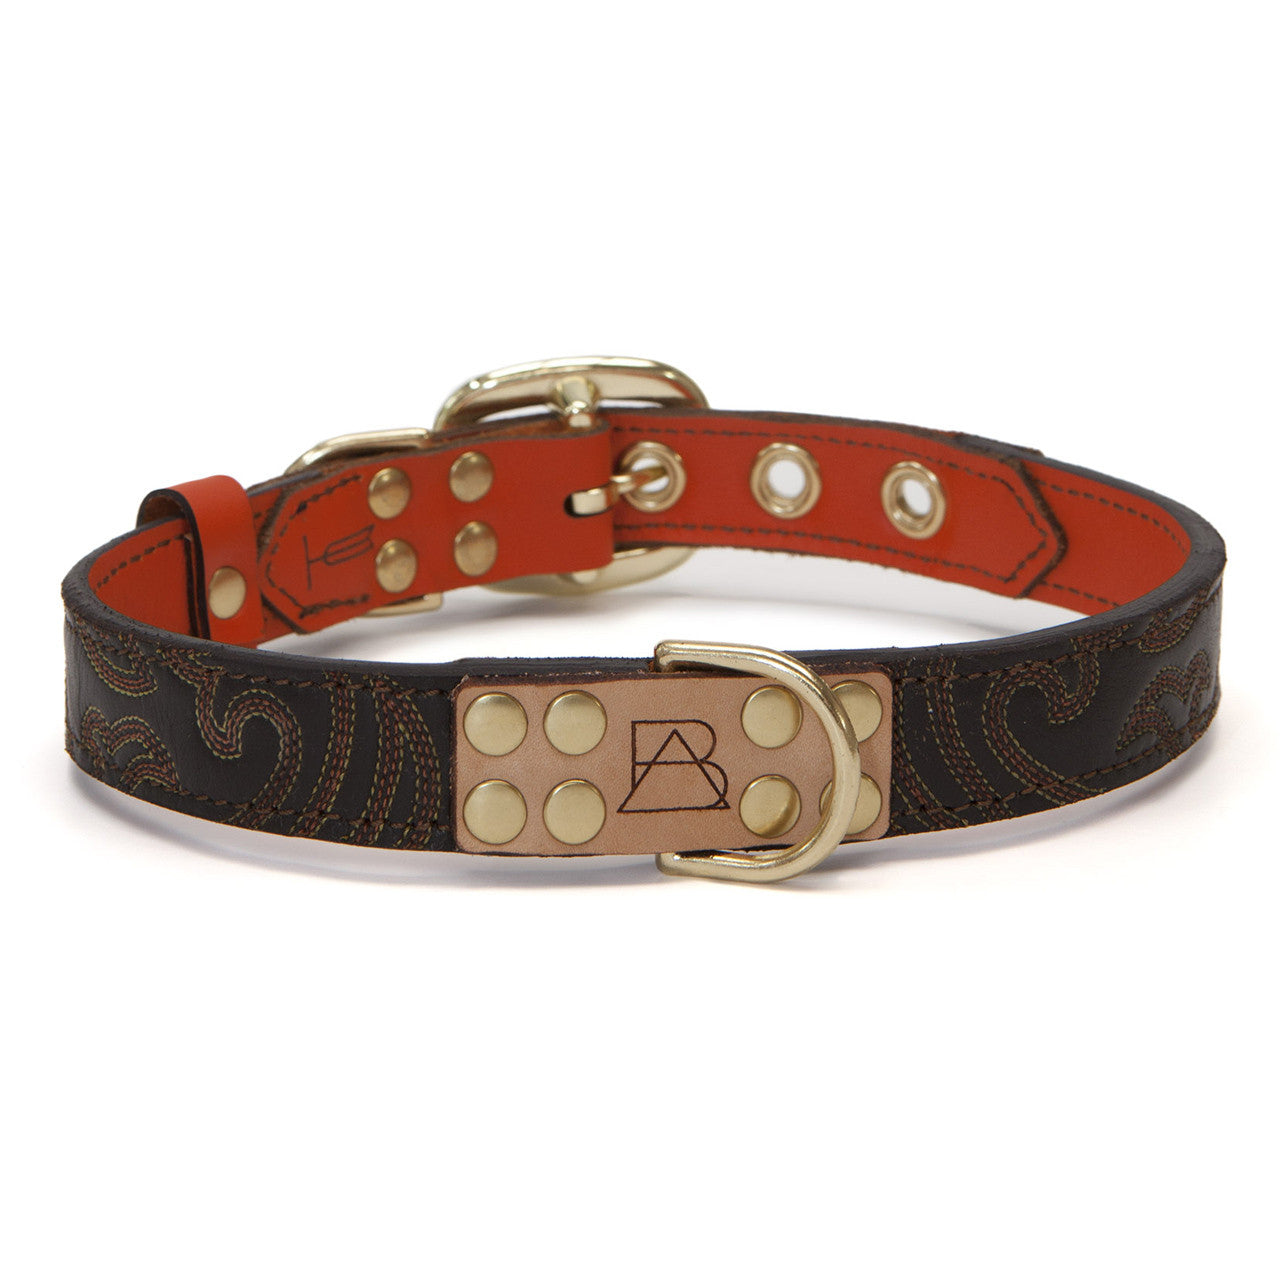 Orange Dog Collar with Dark Brown Leather + Orange Crest Stitching (front view)